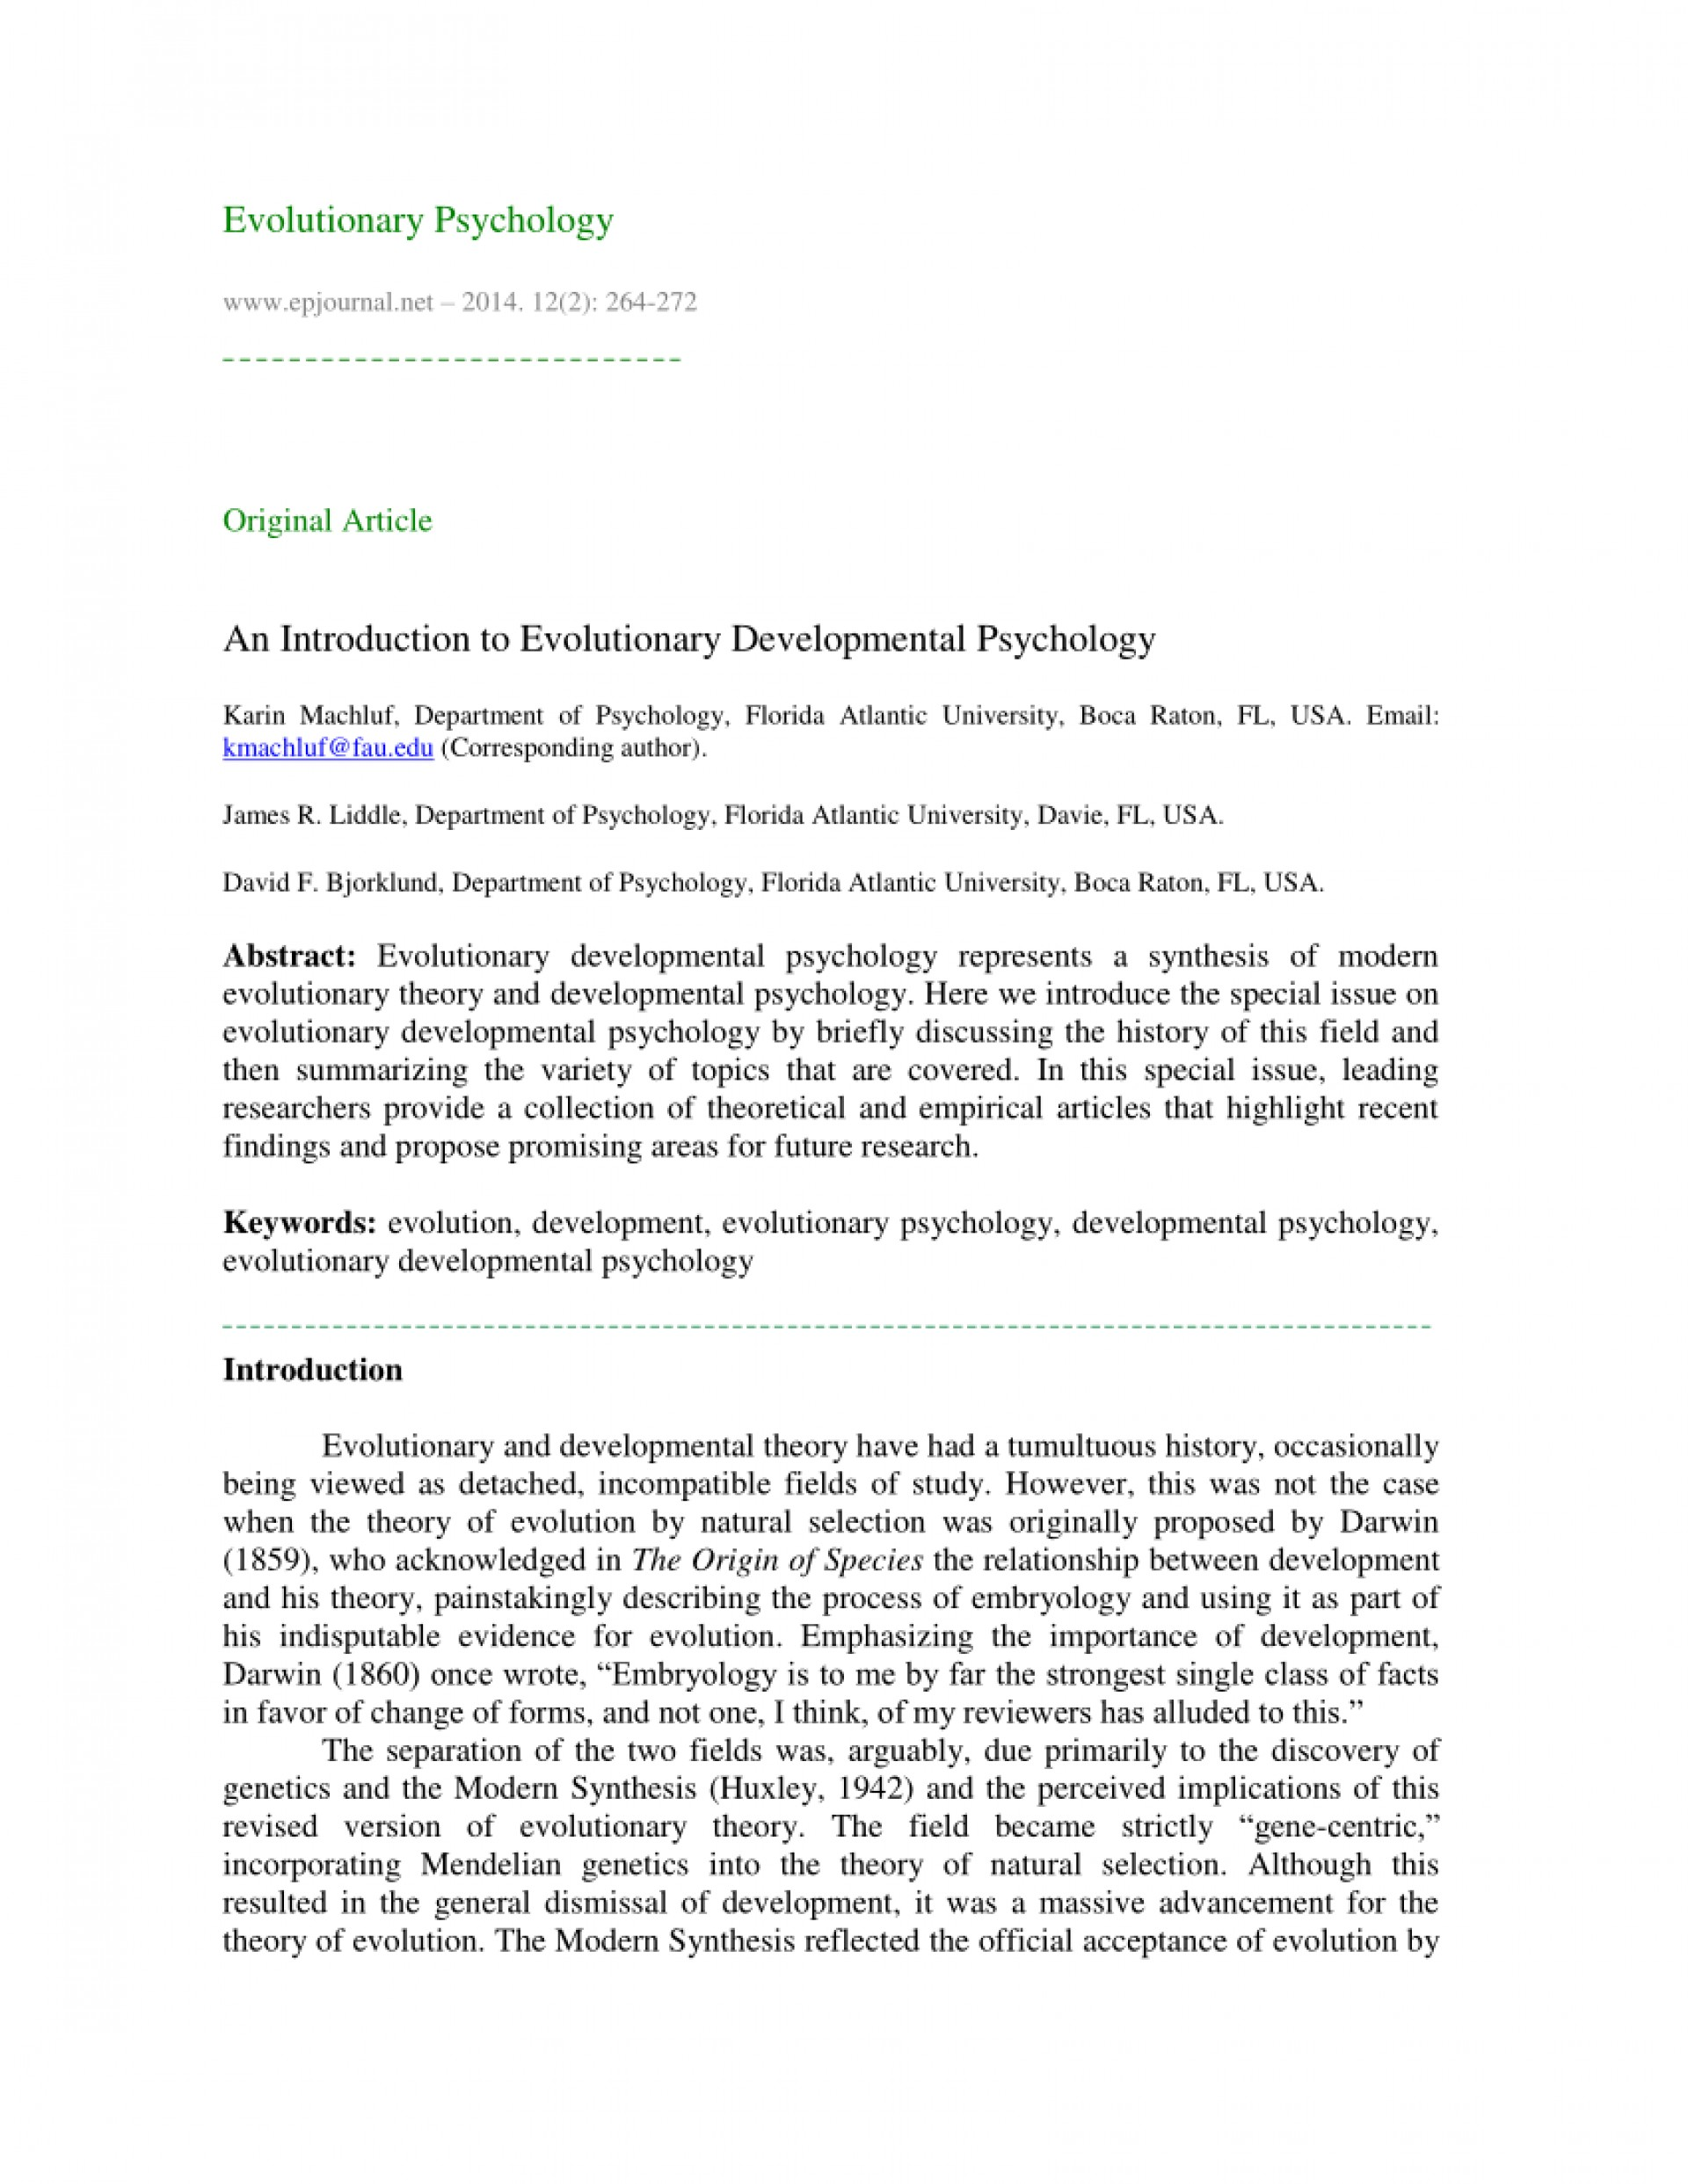 003 Evolutionary Psychology Topics For Research Papers Paper Unique 1920